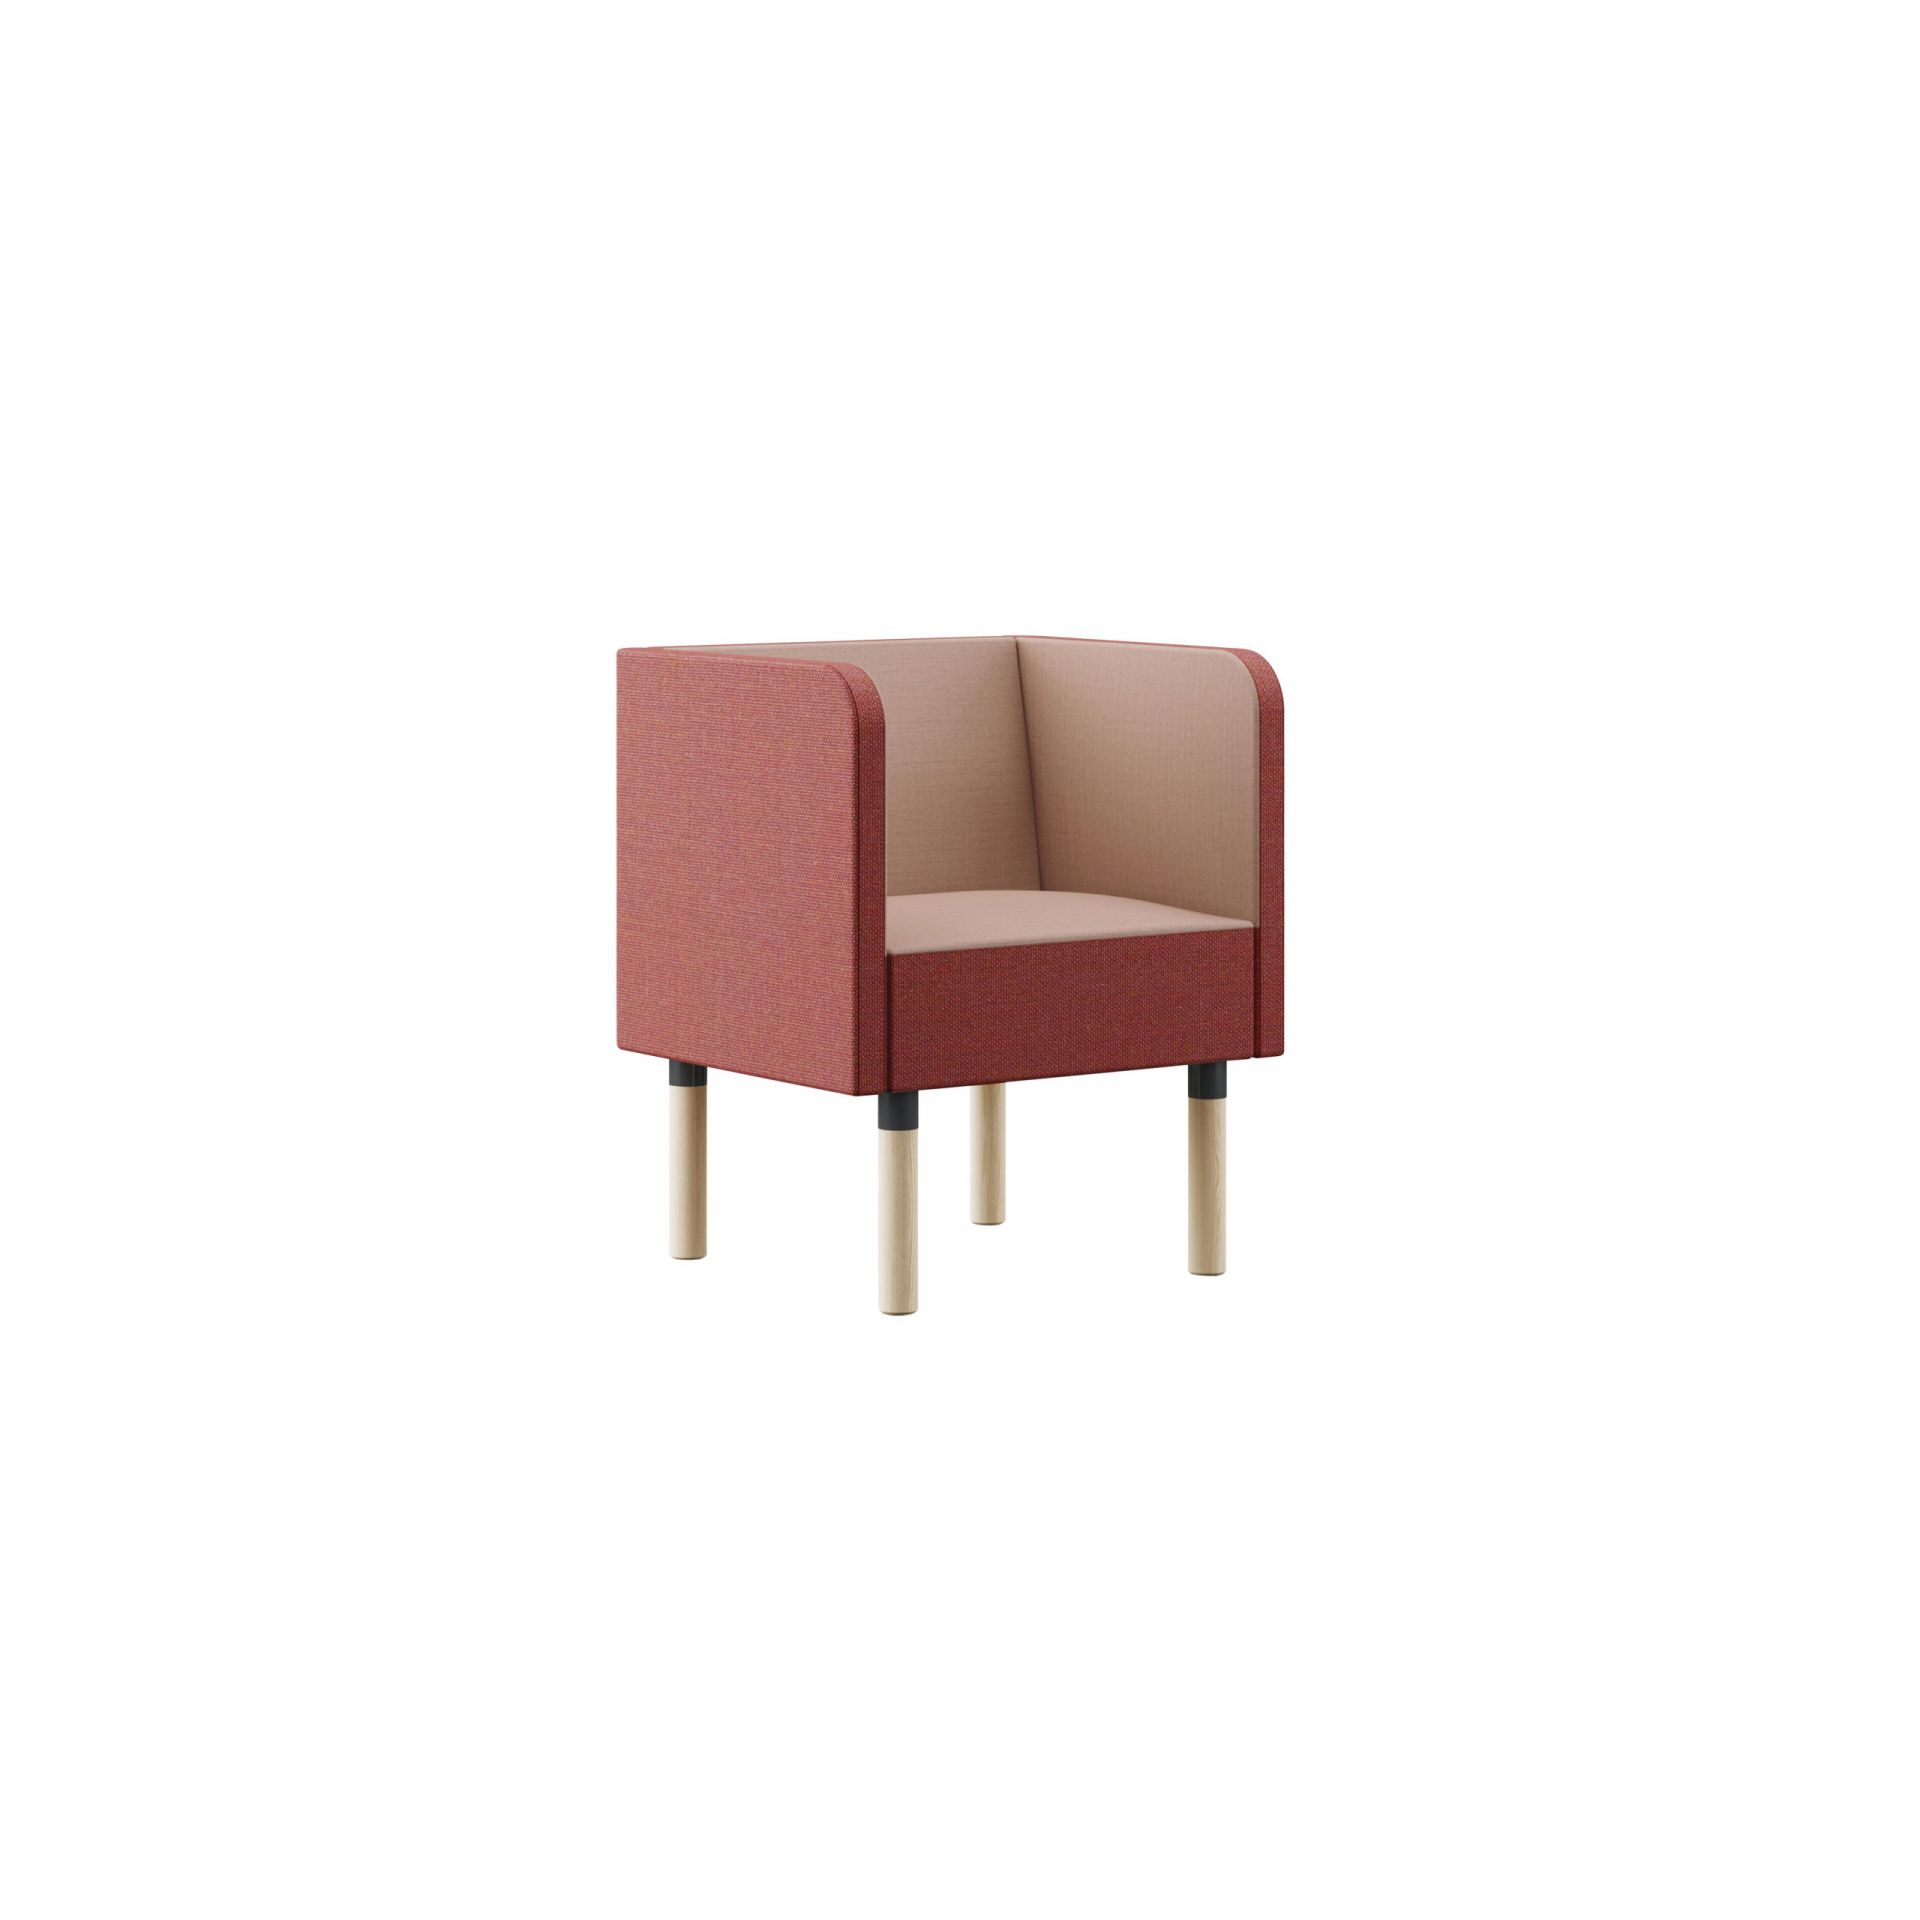 Mingle Sofa with wooden legs product image 5